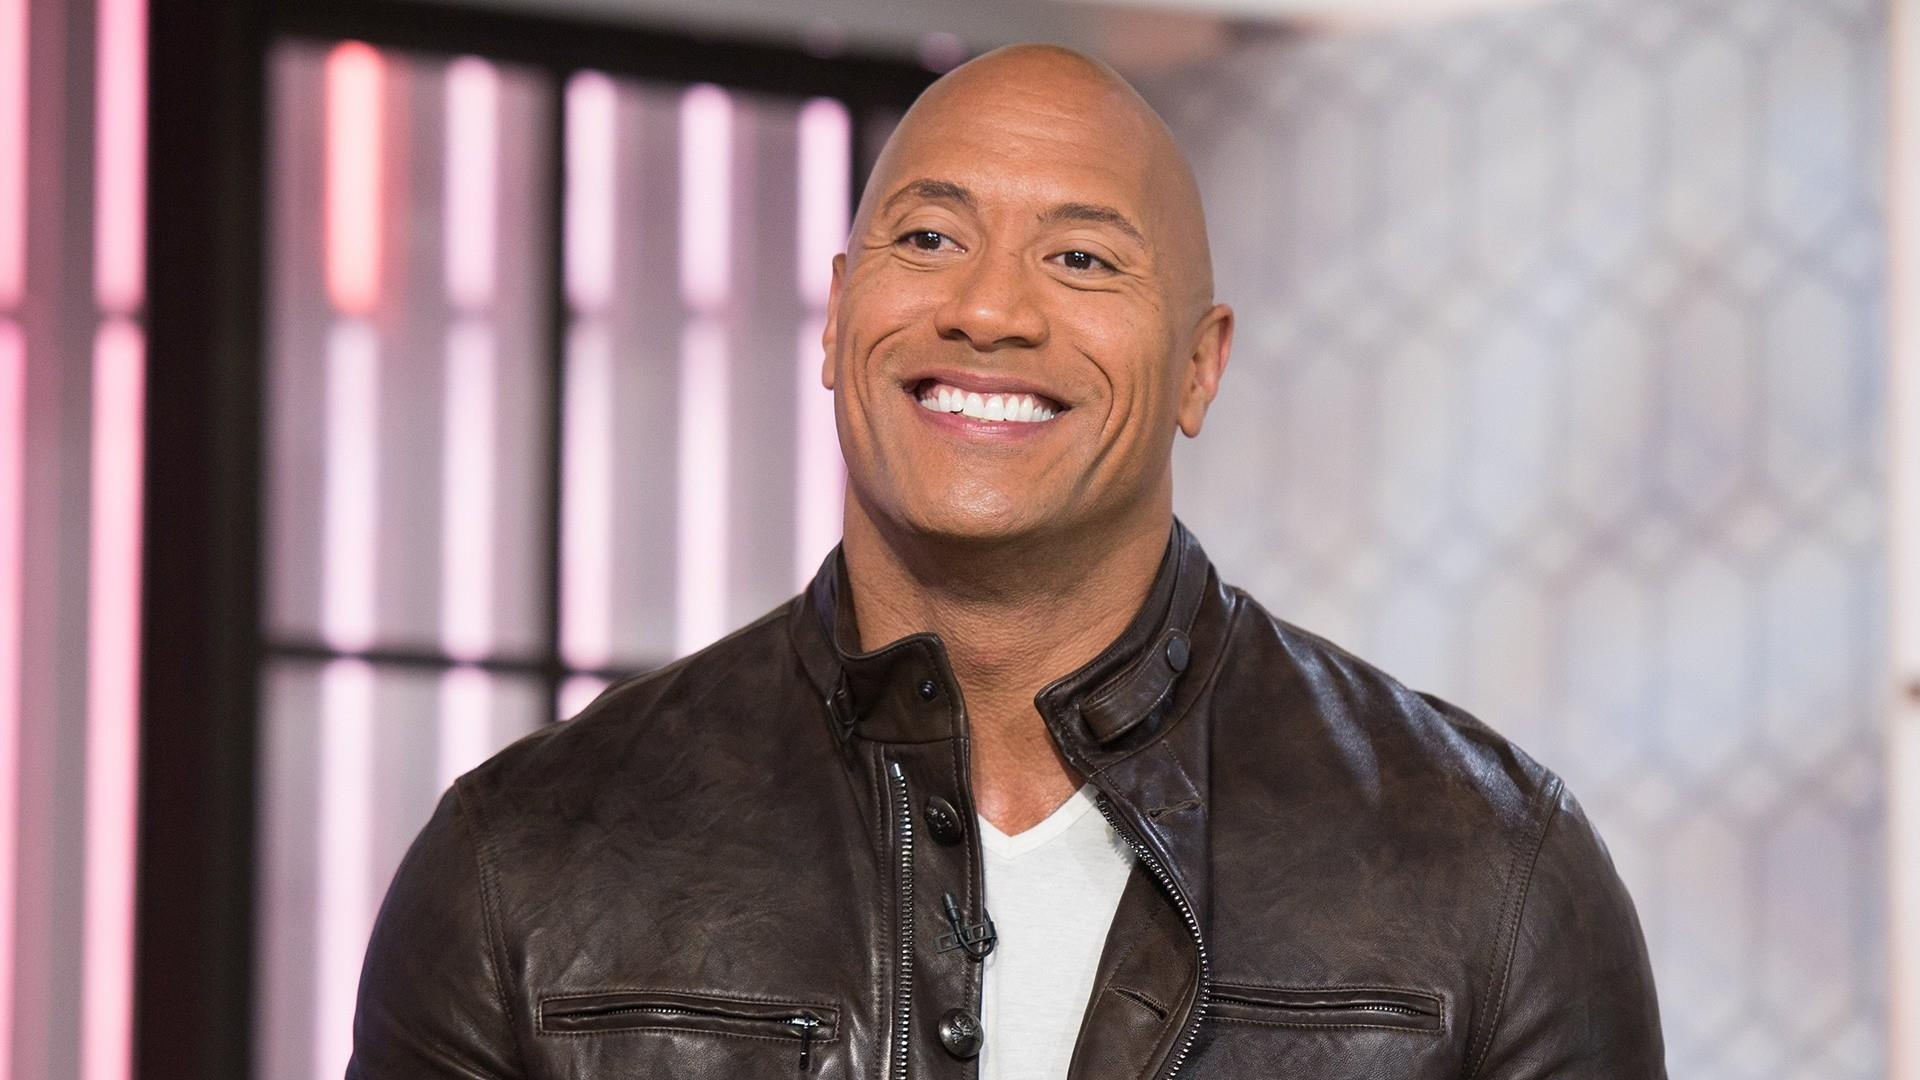 Dwayne Johnson is the highest paid actor of 2019